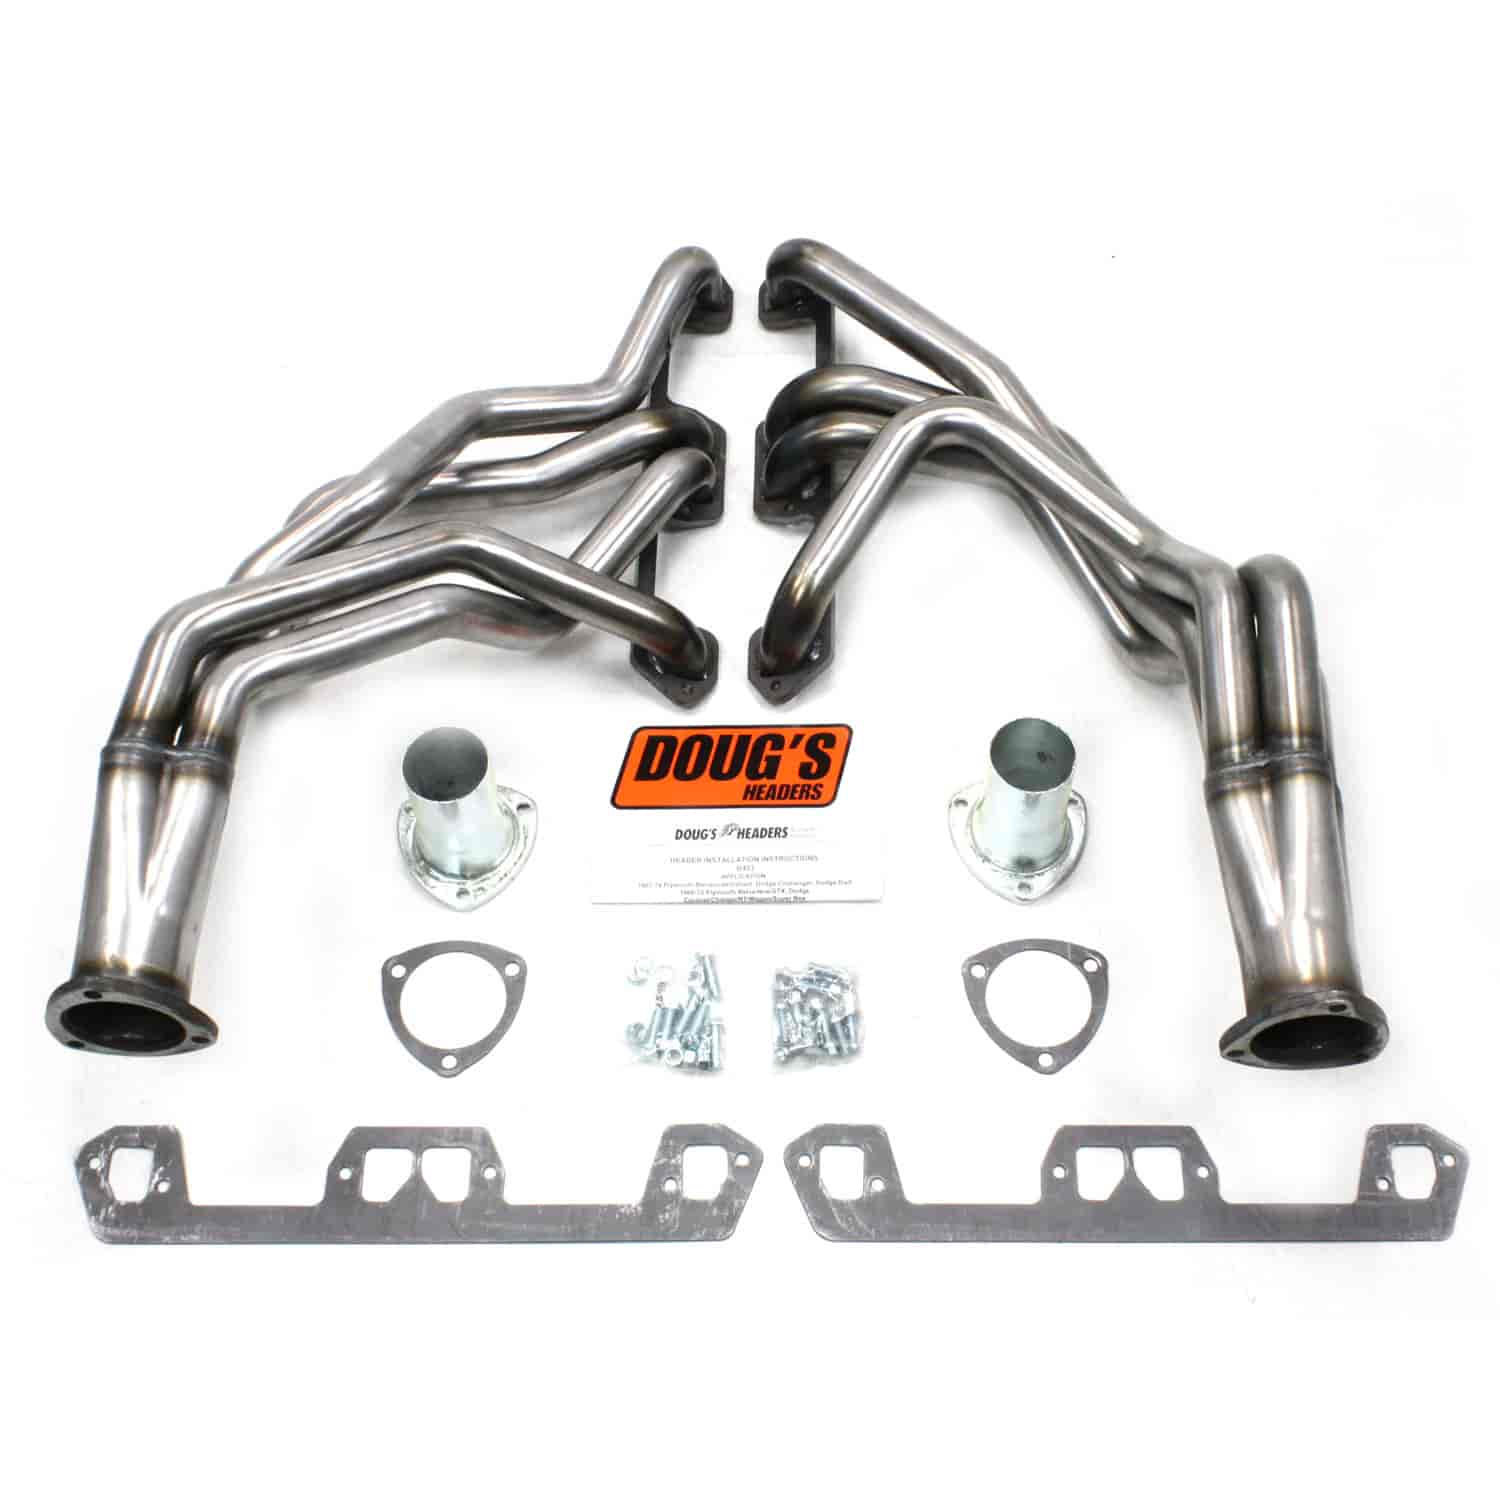 doug u0026 39 s headers d453 raw headers